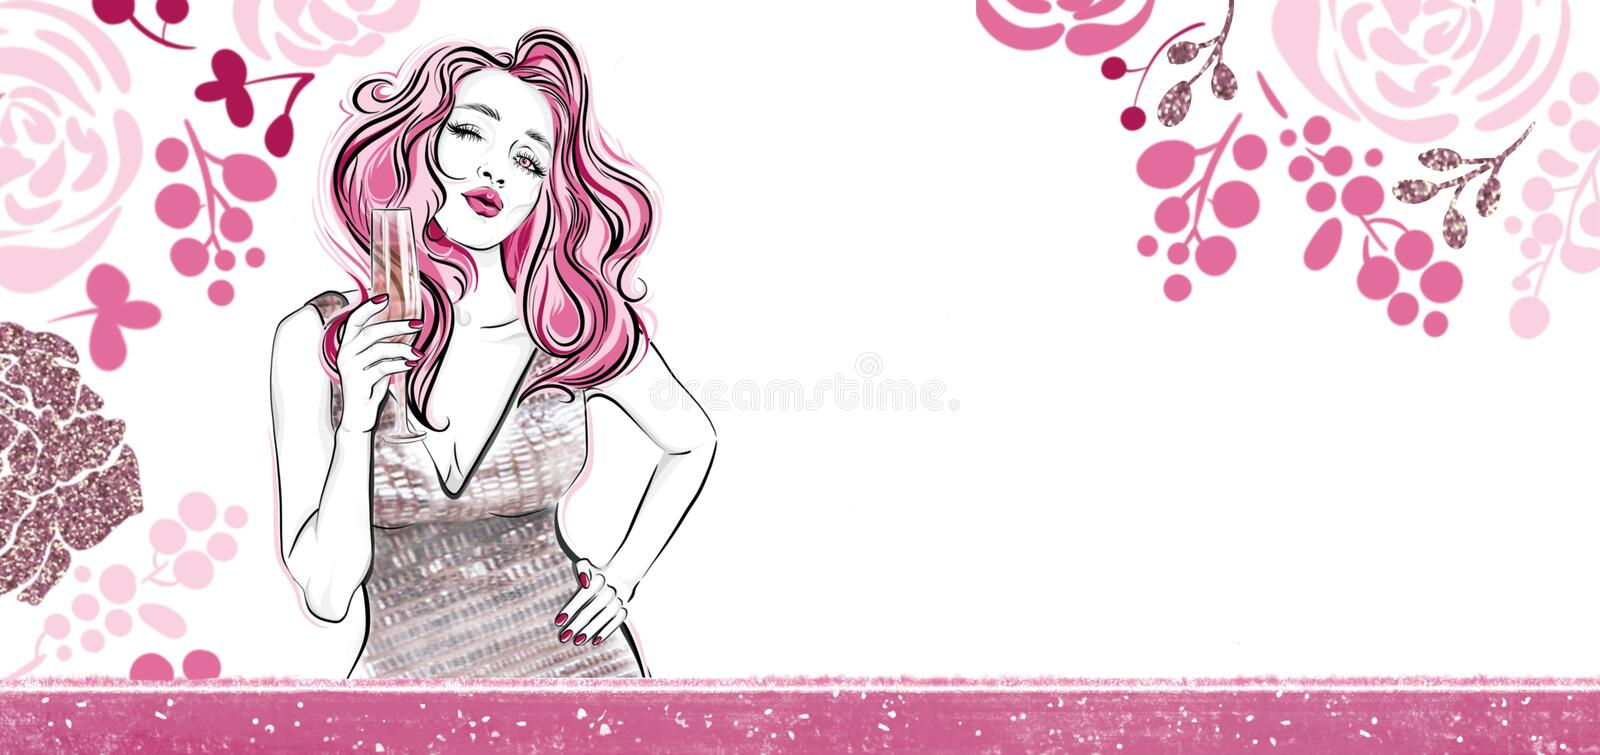 Horizontal floral banner. Girl with a glass of champagne sending air kiss. Templates for invintation stock illustration